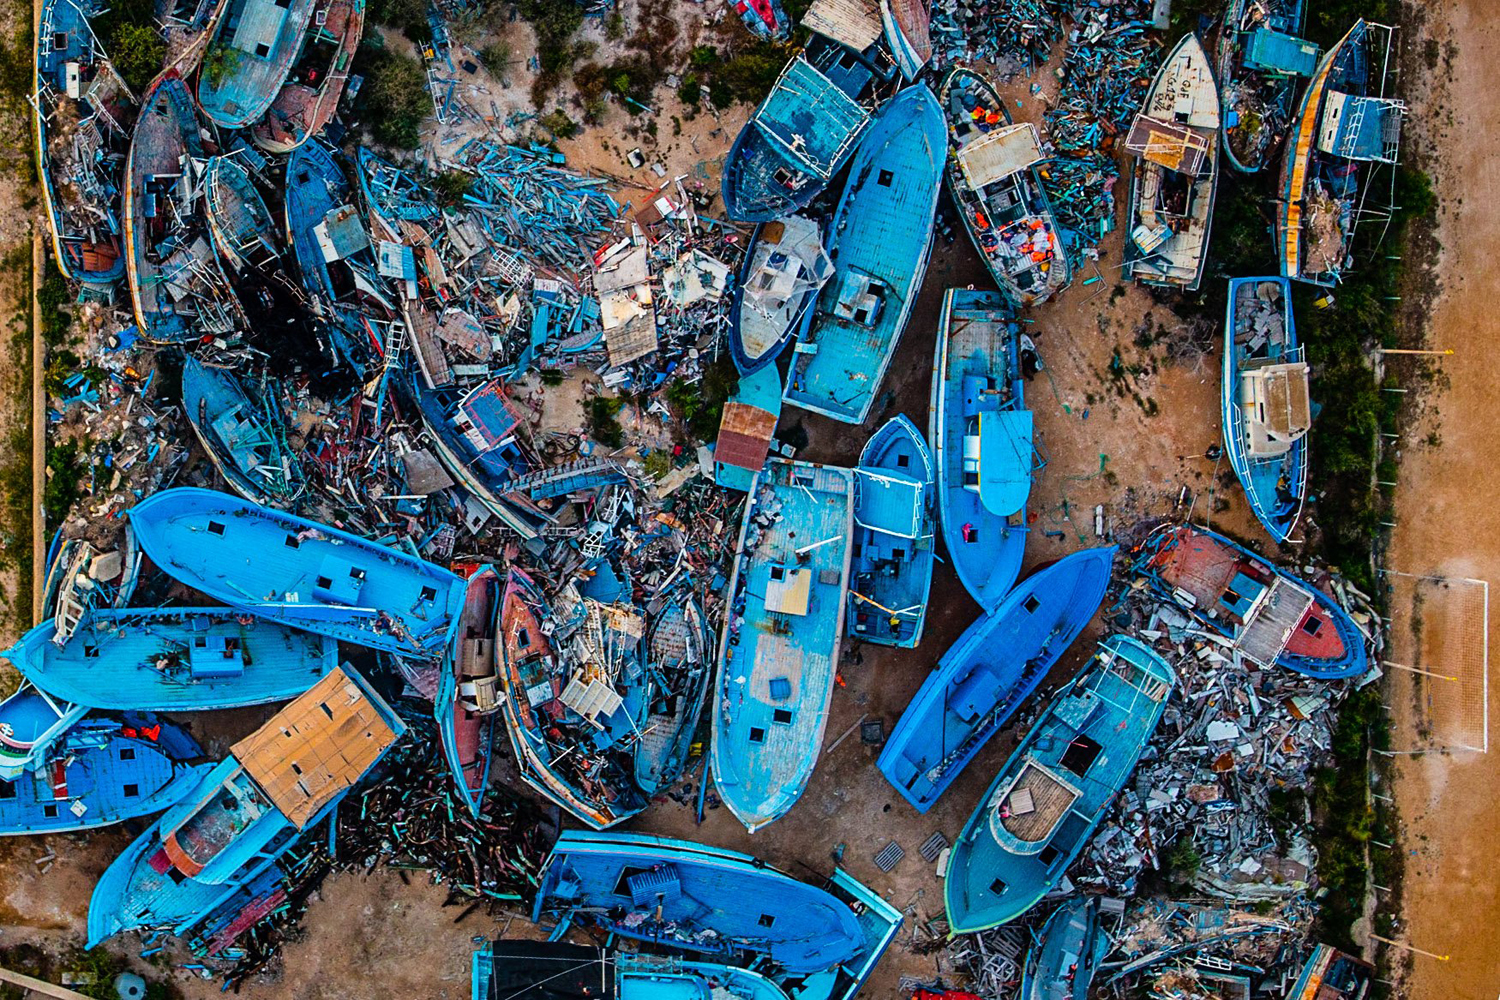 Abandoned boats graveyard in Lampedusa, May 29, 2014.